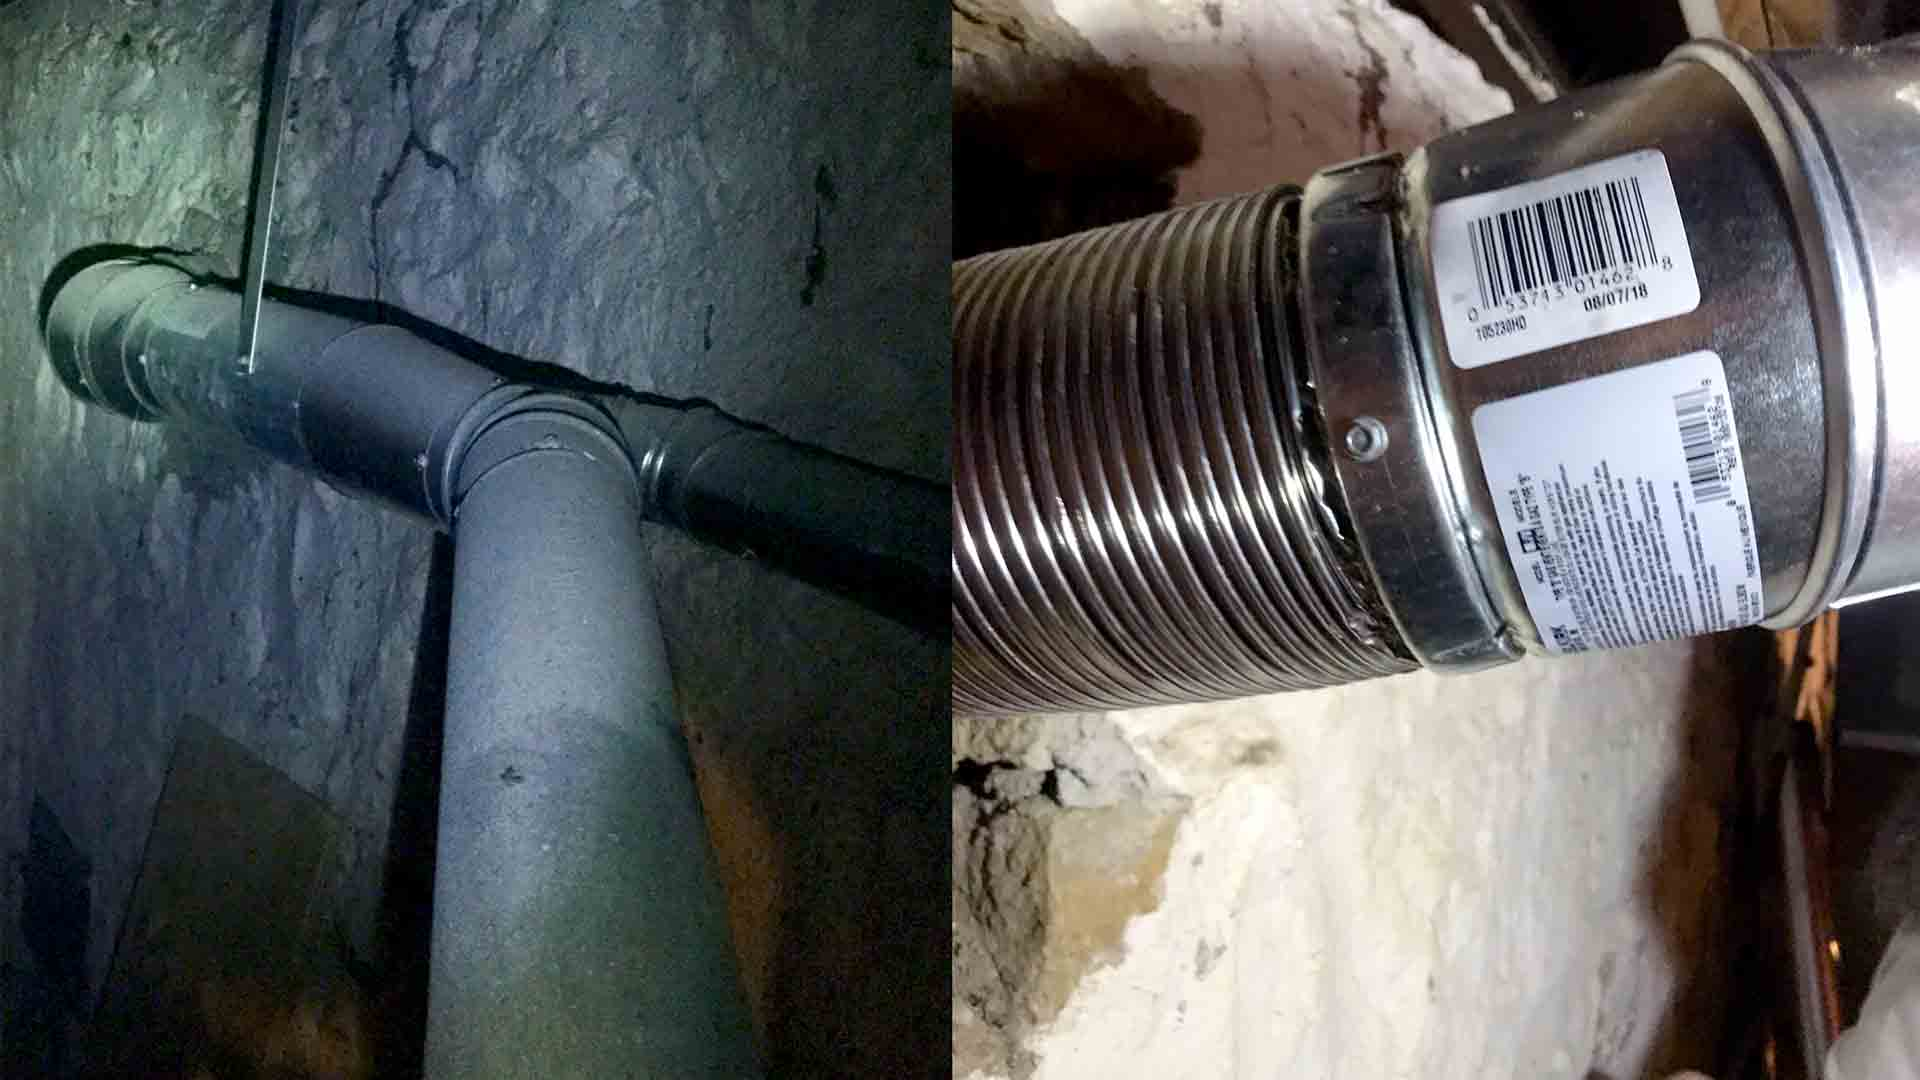 Steel Utility Liner Install for Gas Furnace and Hot Water Heater